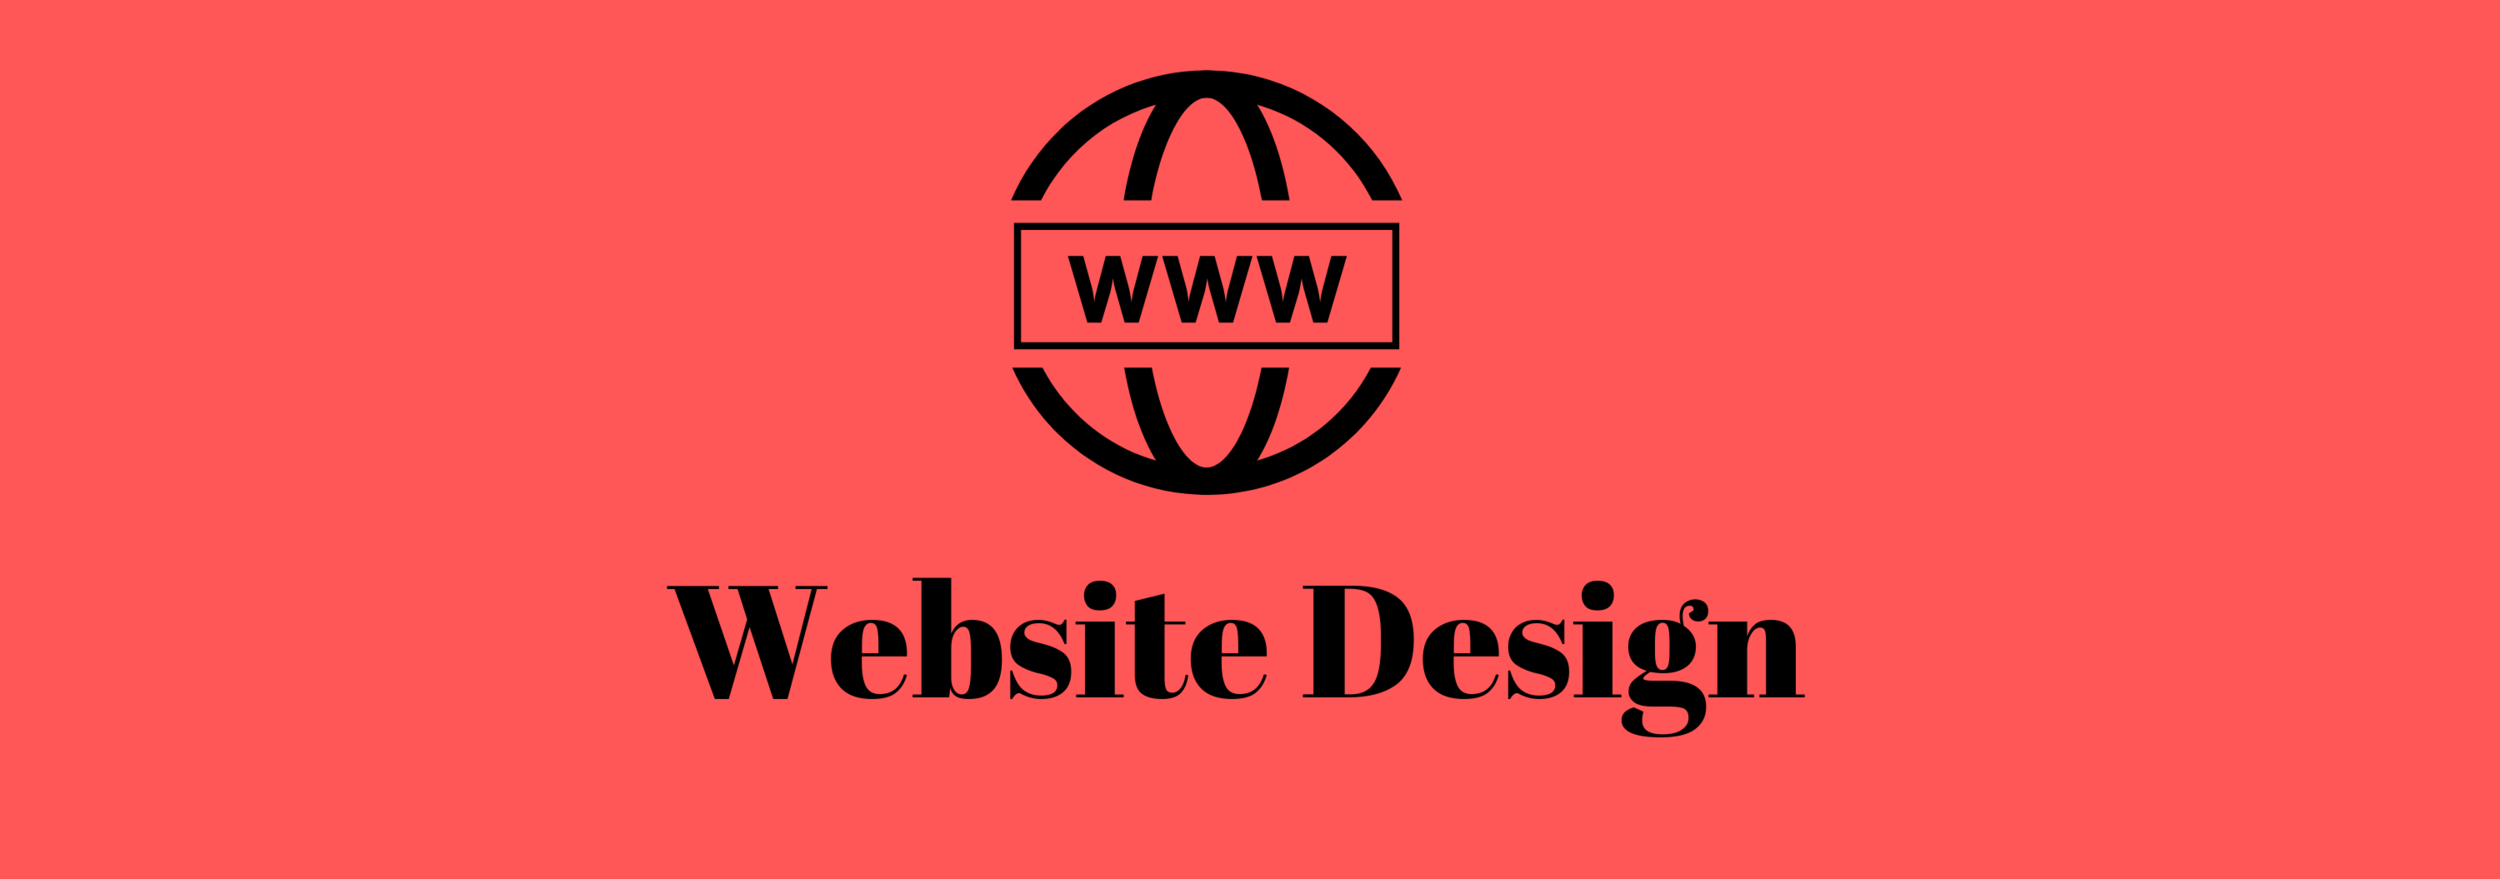 Website Design (1).png